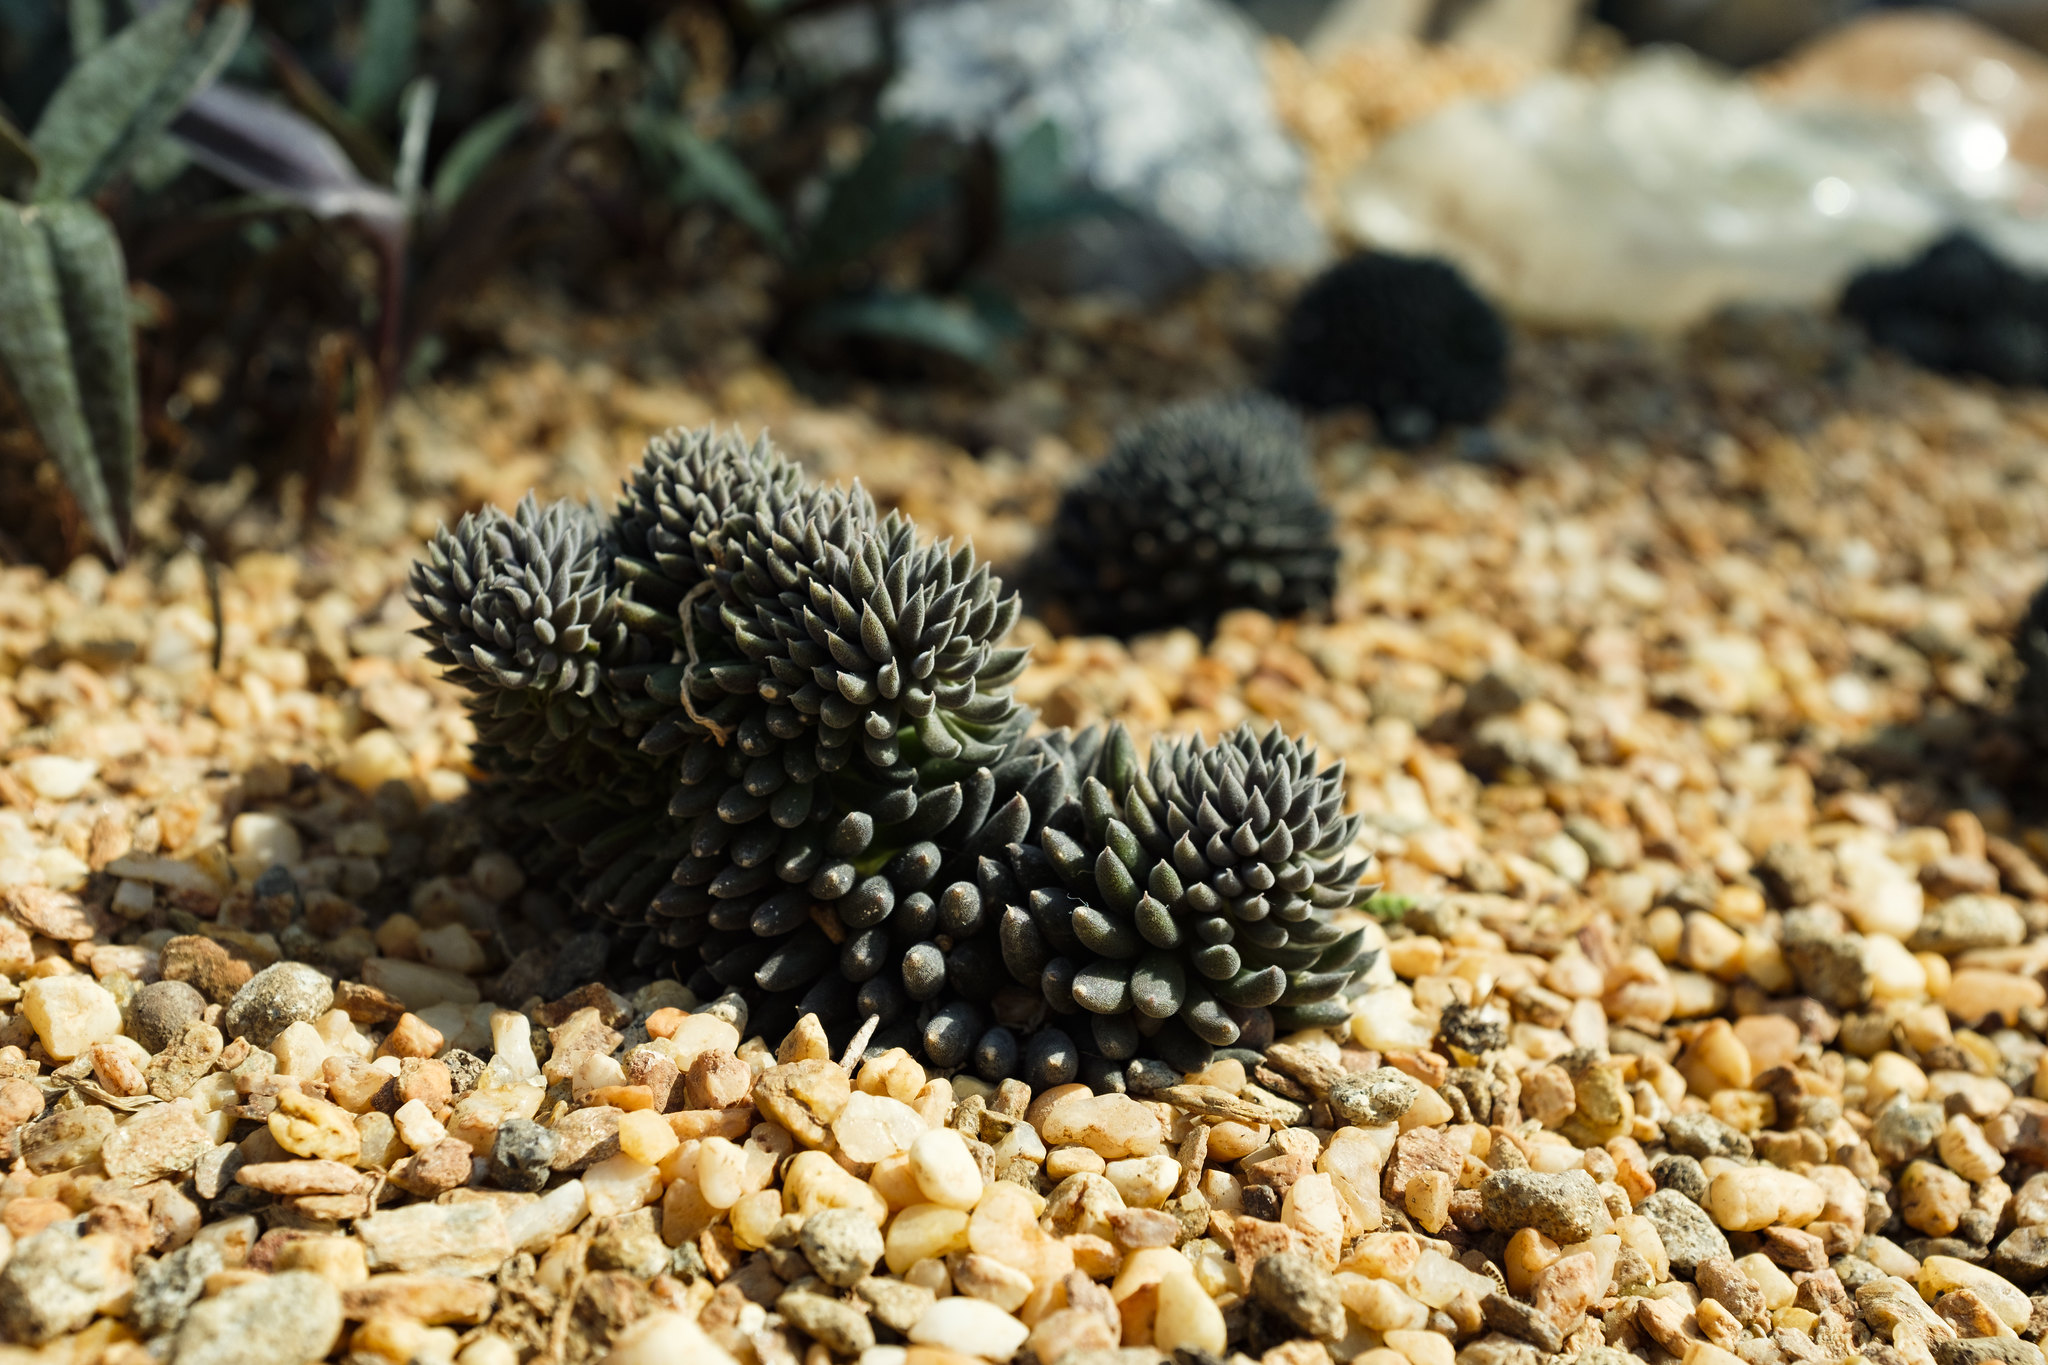 A photo of plants in gravel